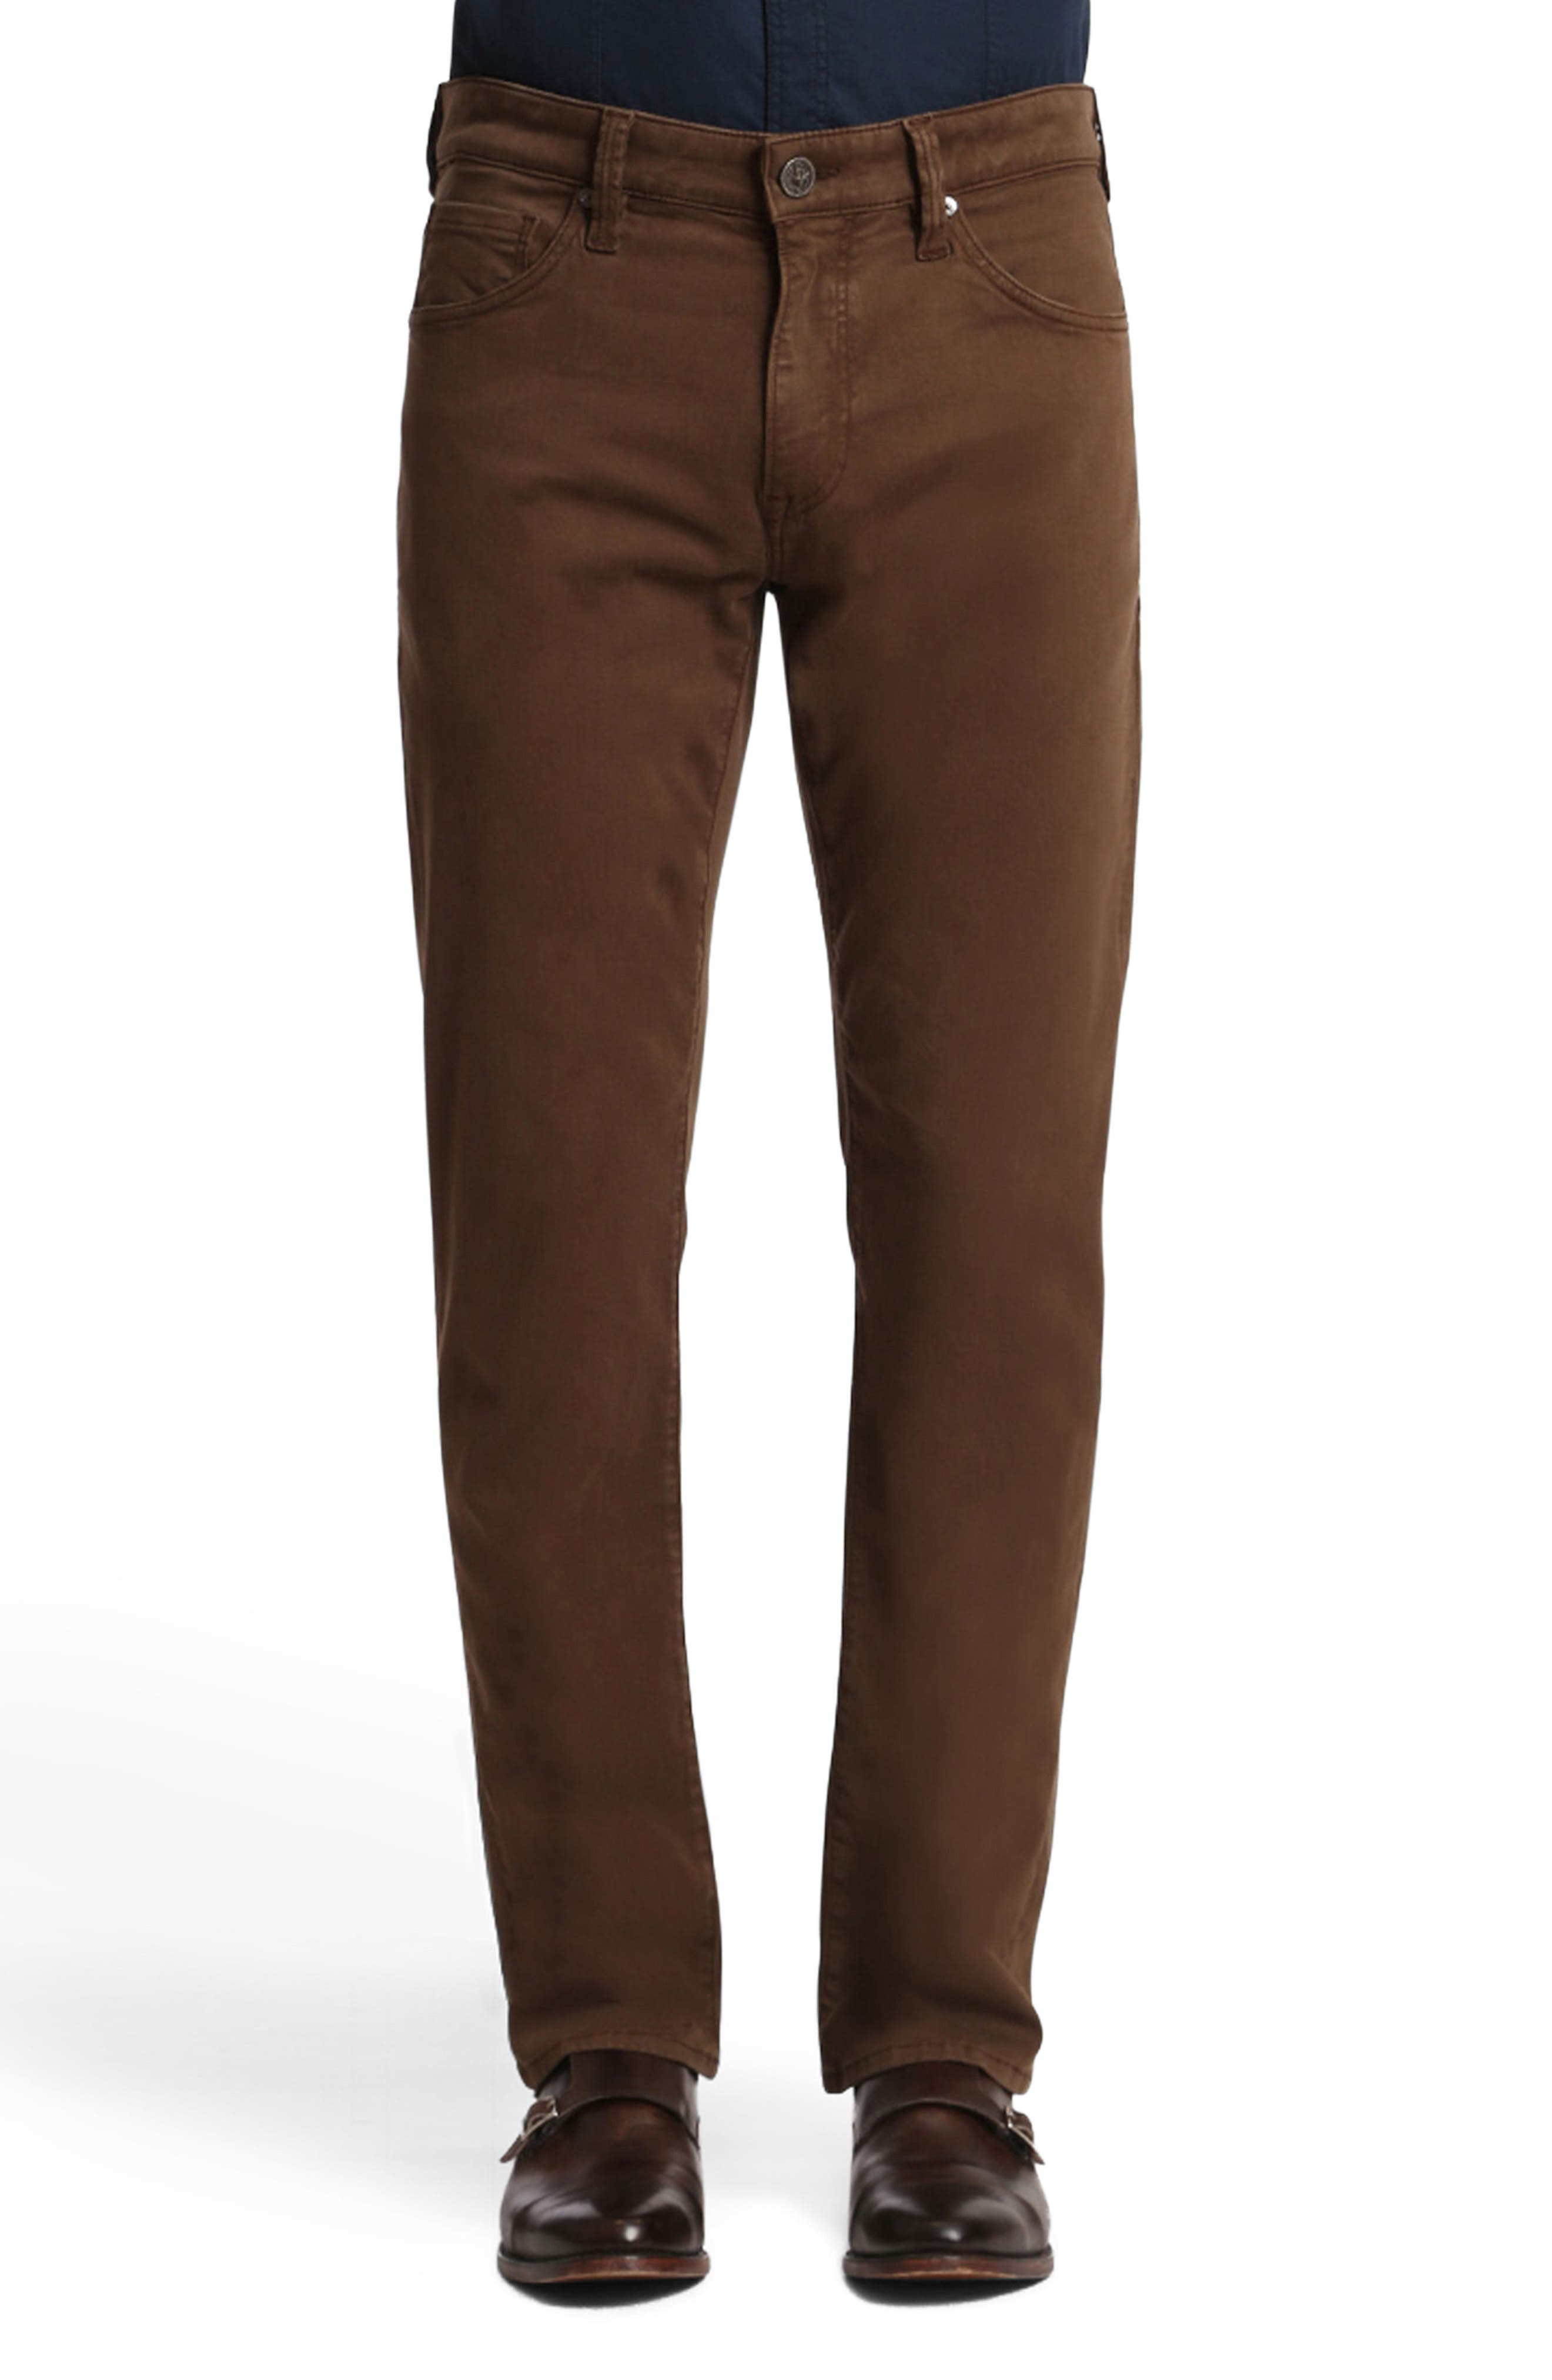 34 Heritage Courage Straight Leg Twill Pants